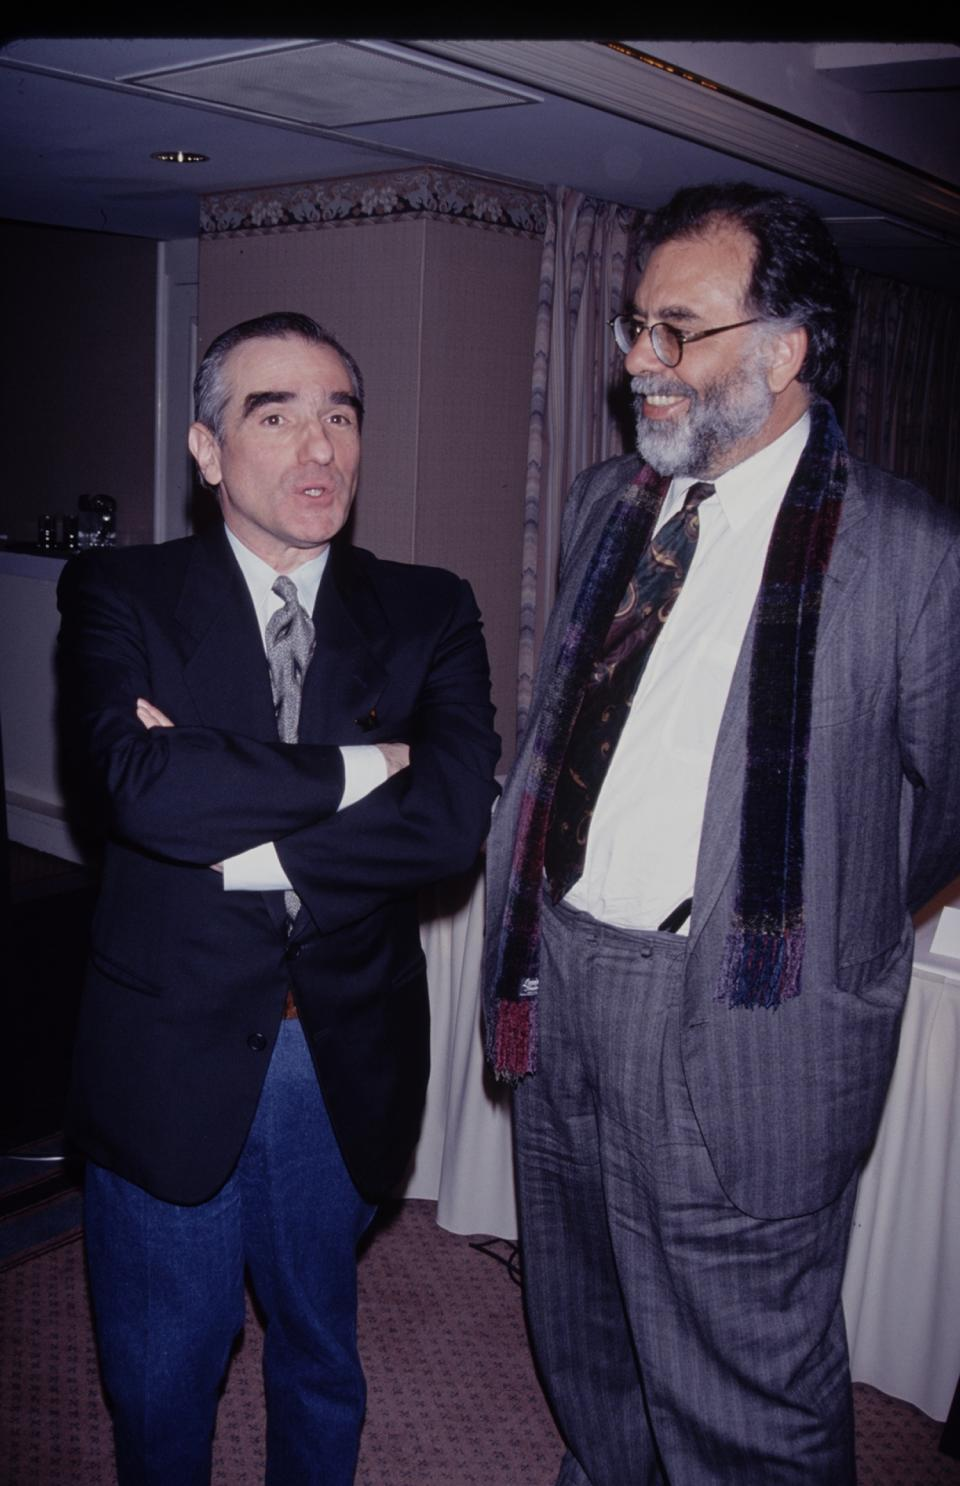 UNITED STATES - Directors Martin Scorsese (left) and Francis Ford Coppola  (Photo by The LIFE Picture Collection via Getty Images)